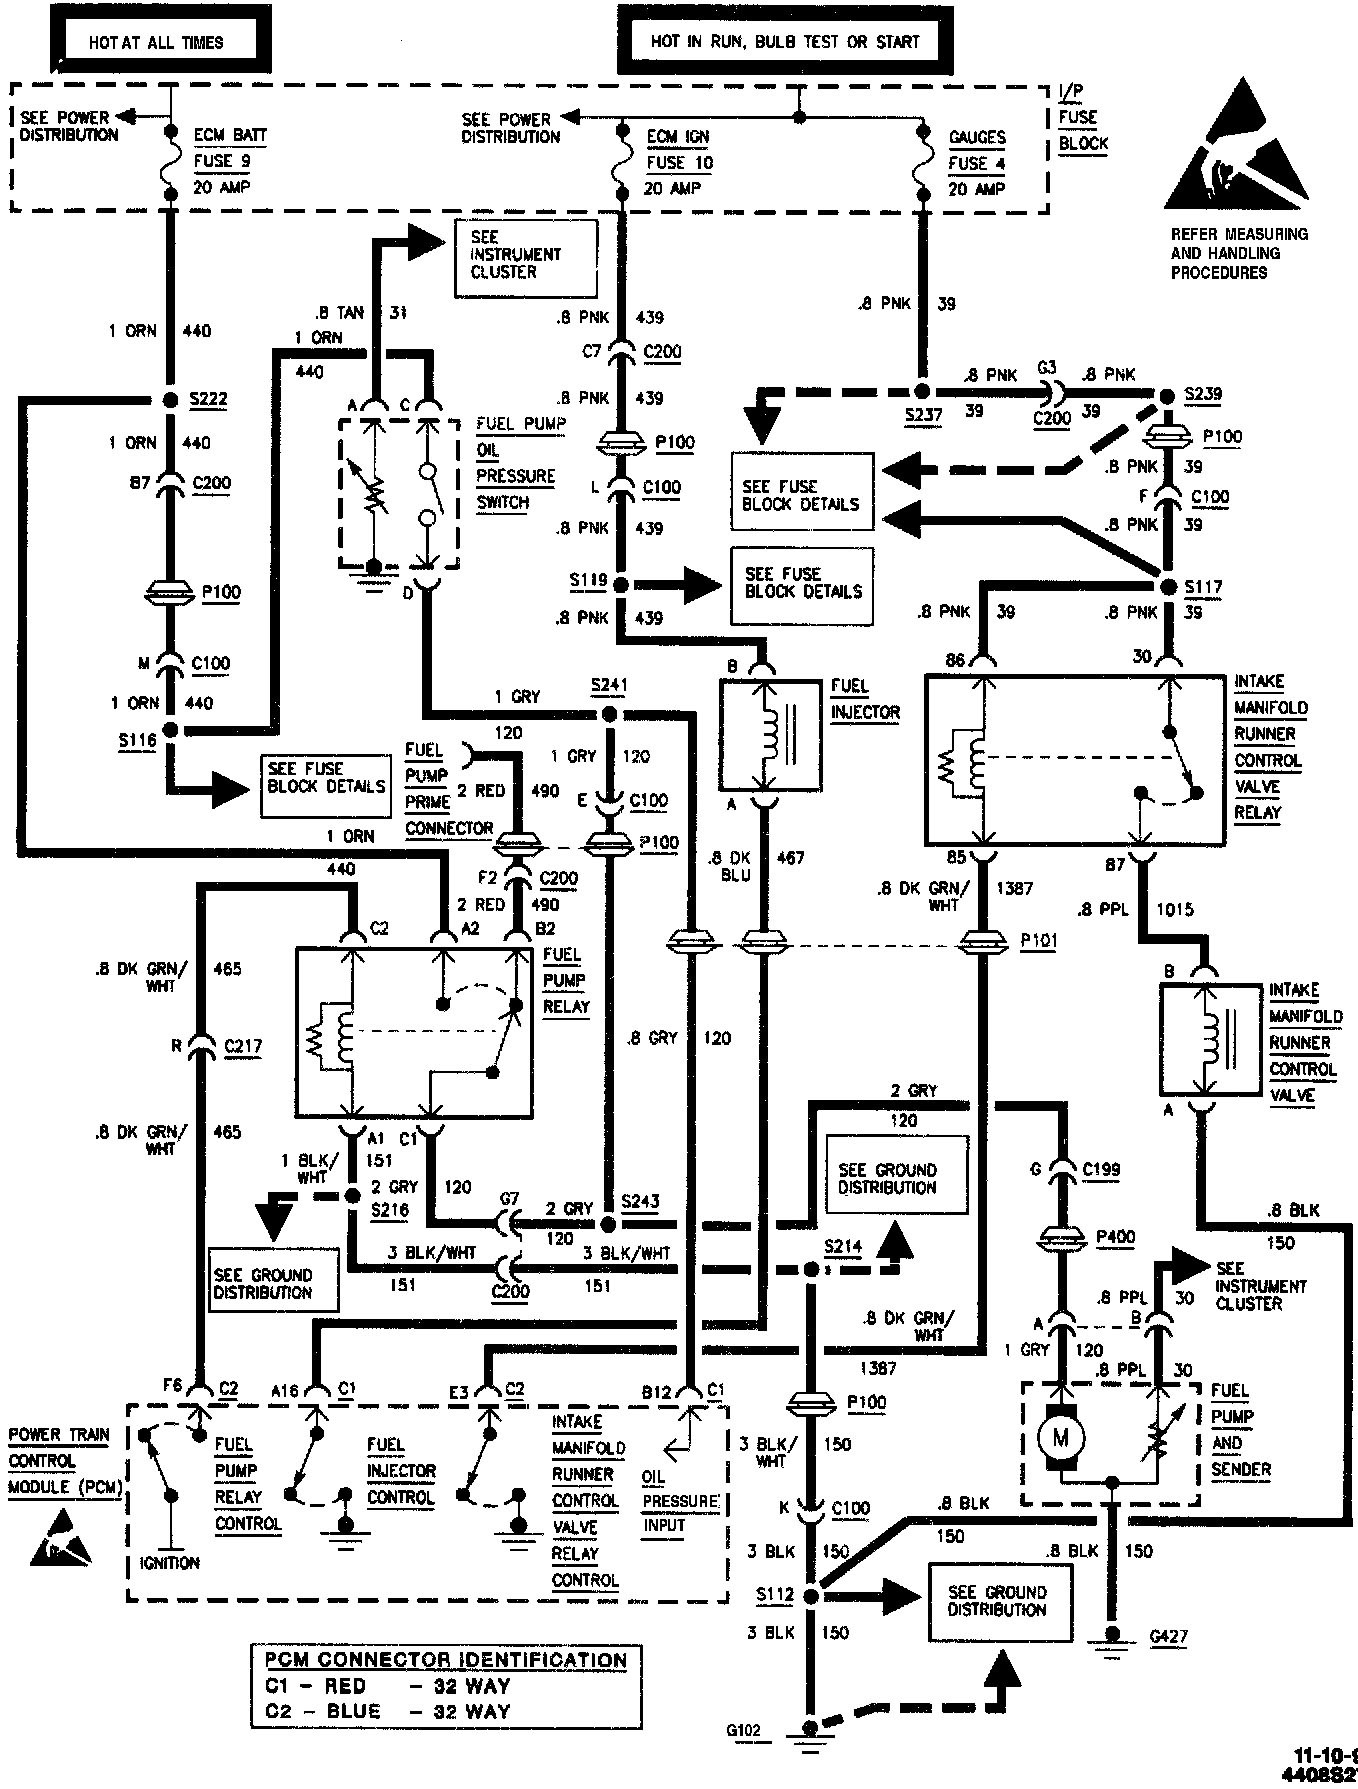 86 S10 Engine Wiring Diagram. 86 S10 Transmission, 86 S10